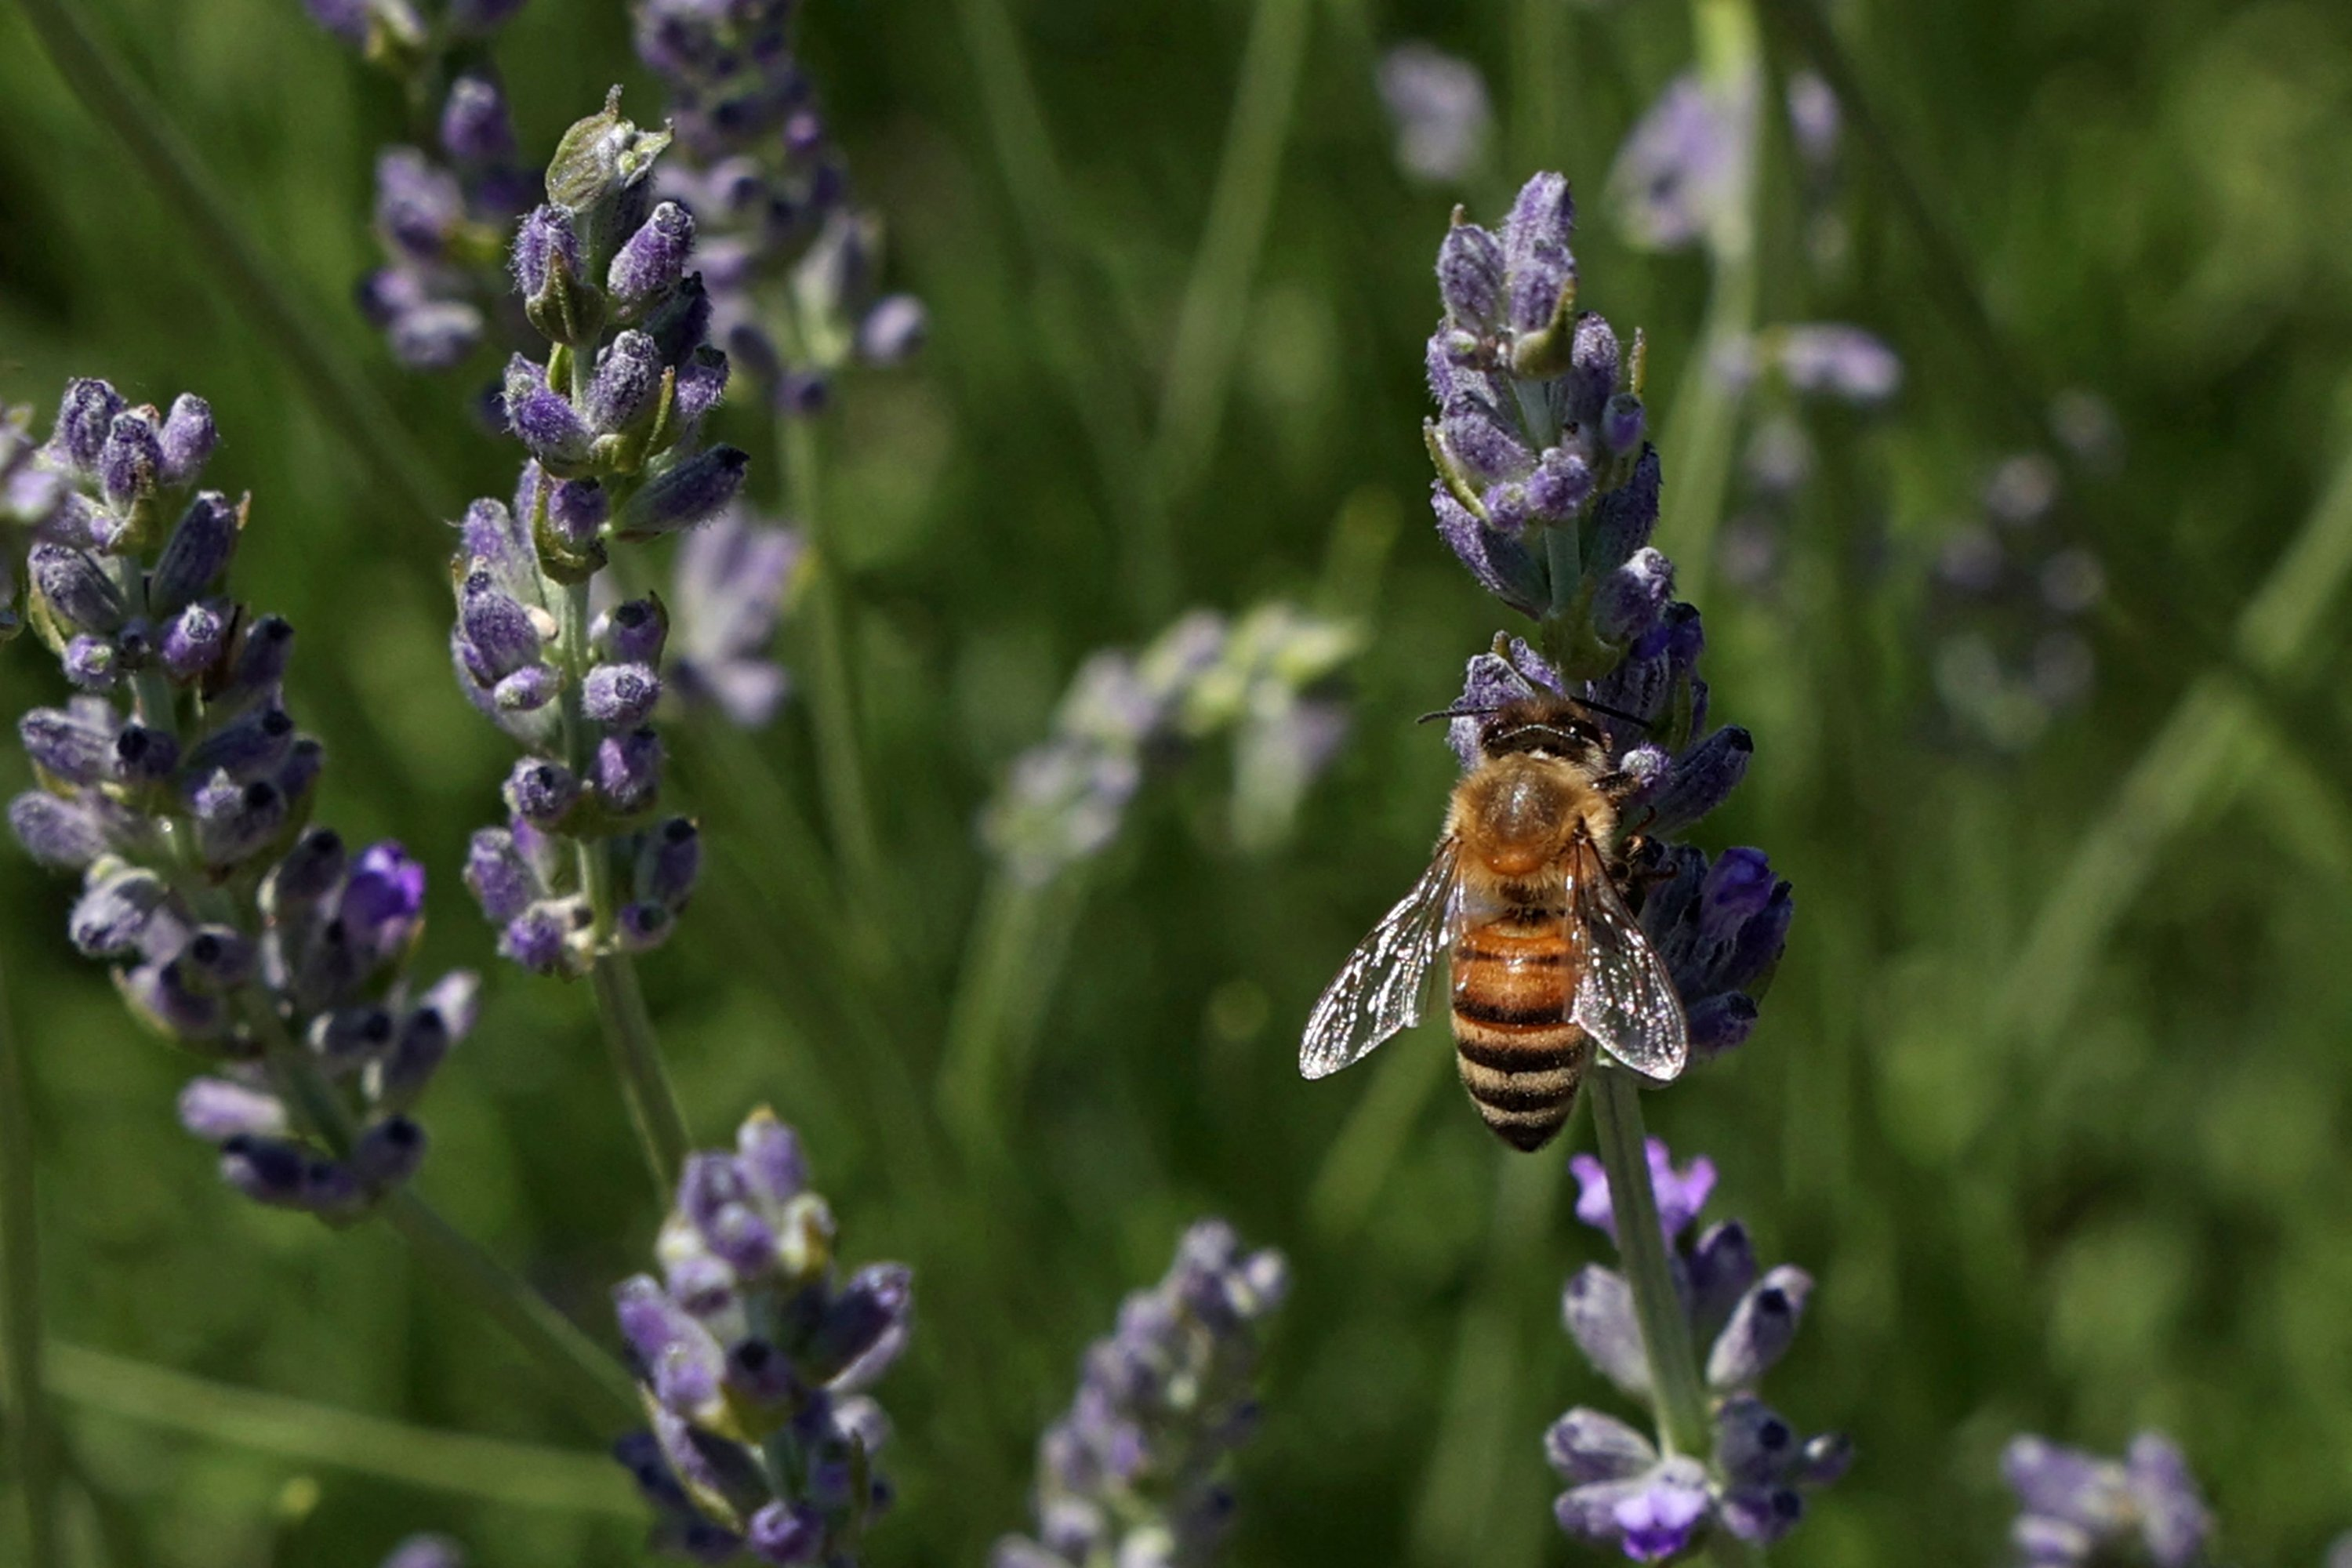 A honeybee collects pollen on a lavender plant at Cyherbia botanical park in the Cypriot village of Avgorou in southwestern Famagusta District, Cyprus, June 8, 2021. (AFP Photo)